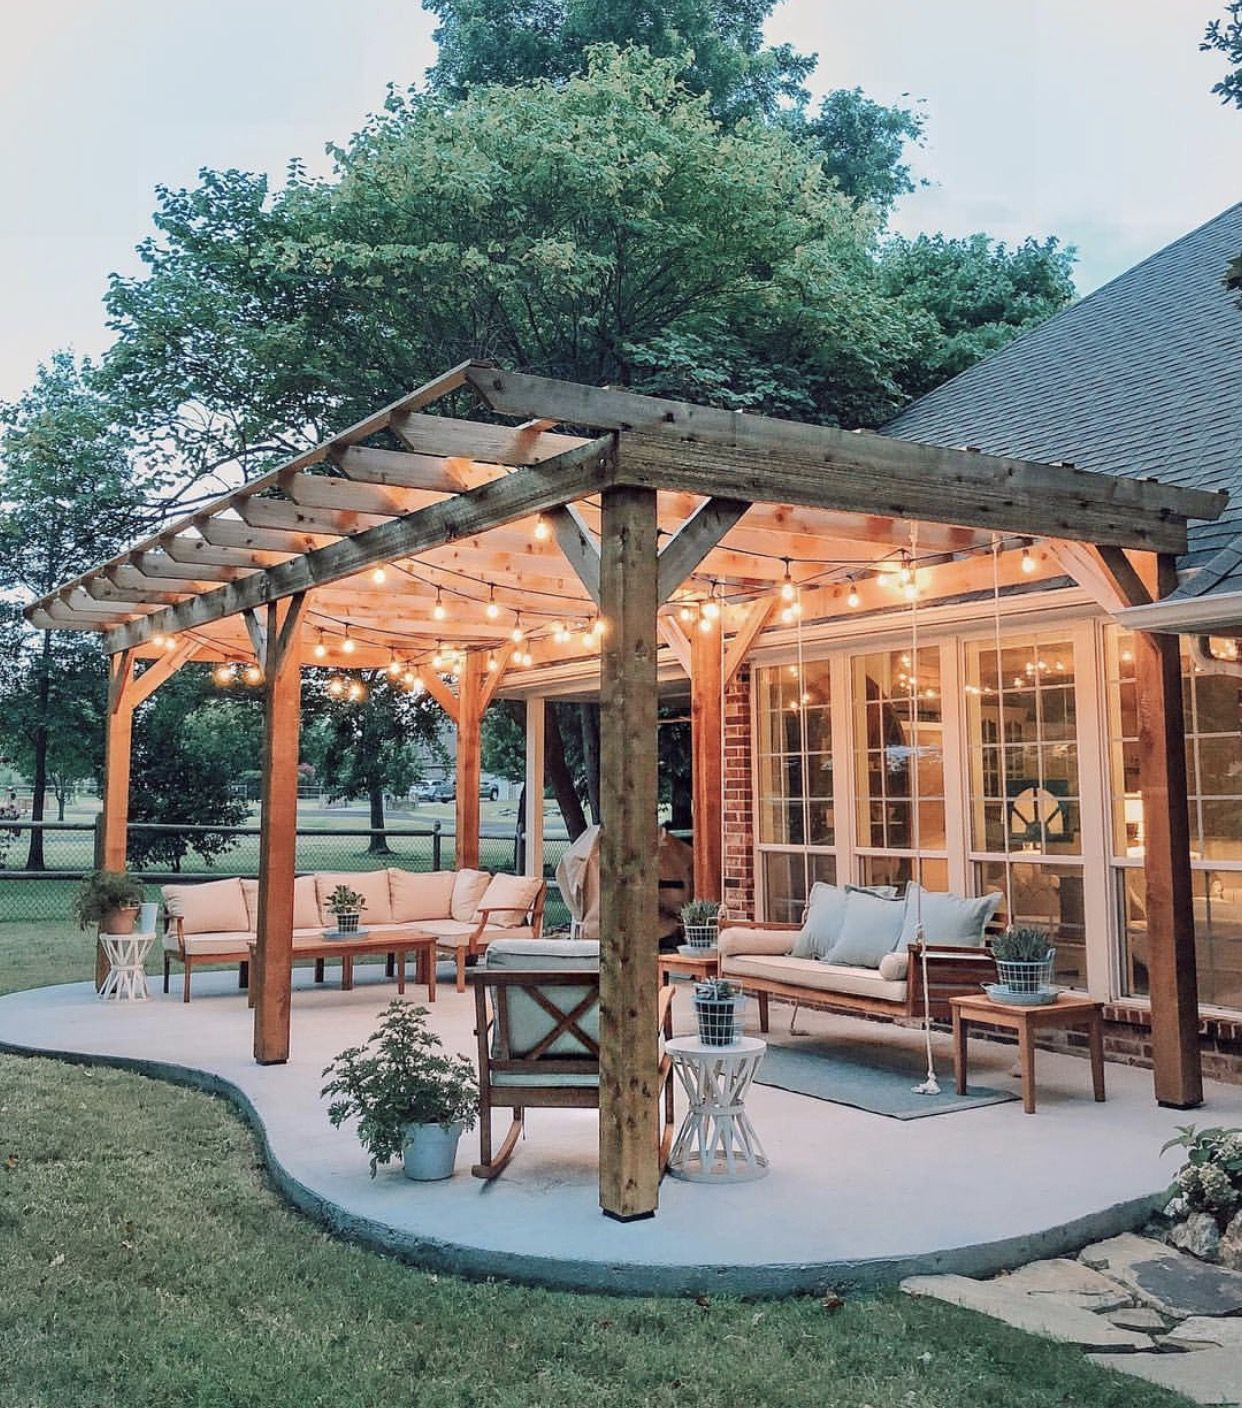 Would like to have some kind of covering over the back patio. Possibly wood if other wood accents are incorporated but otherwise white would be nice too